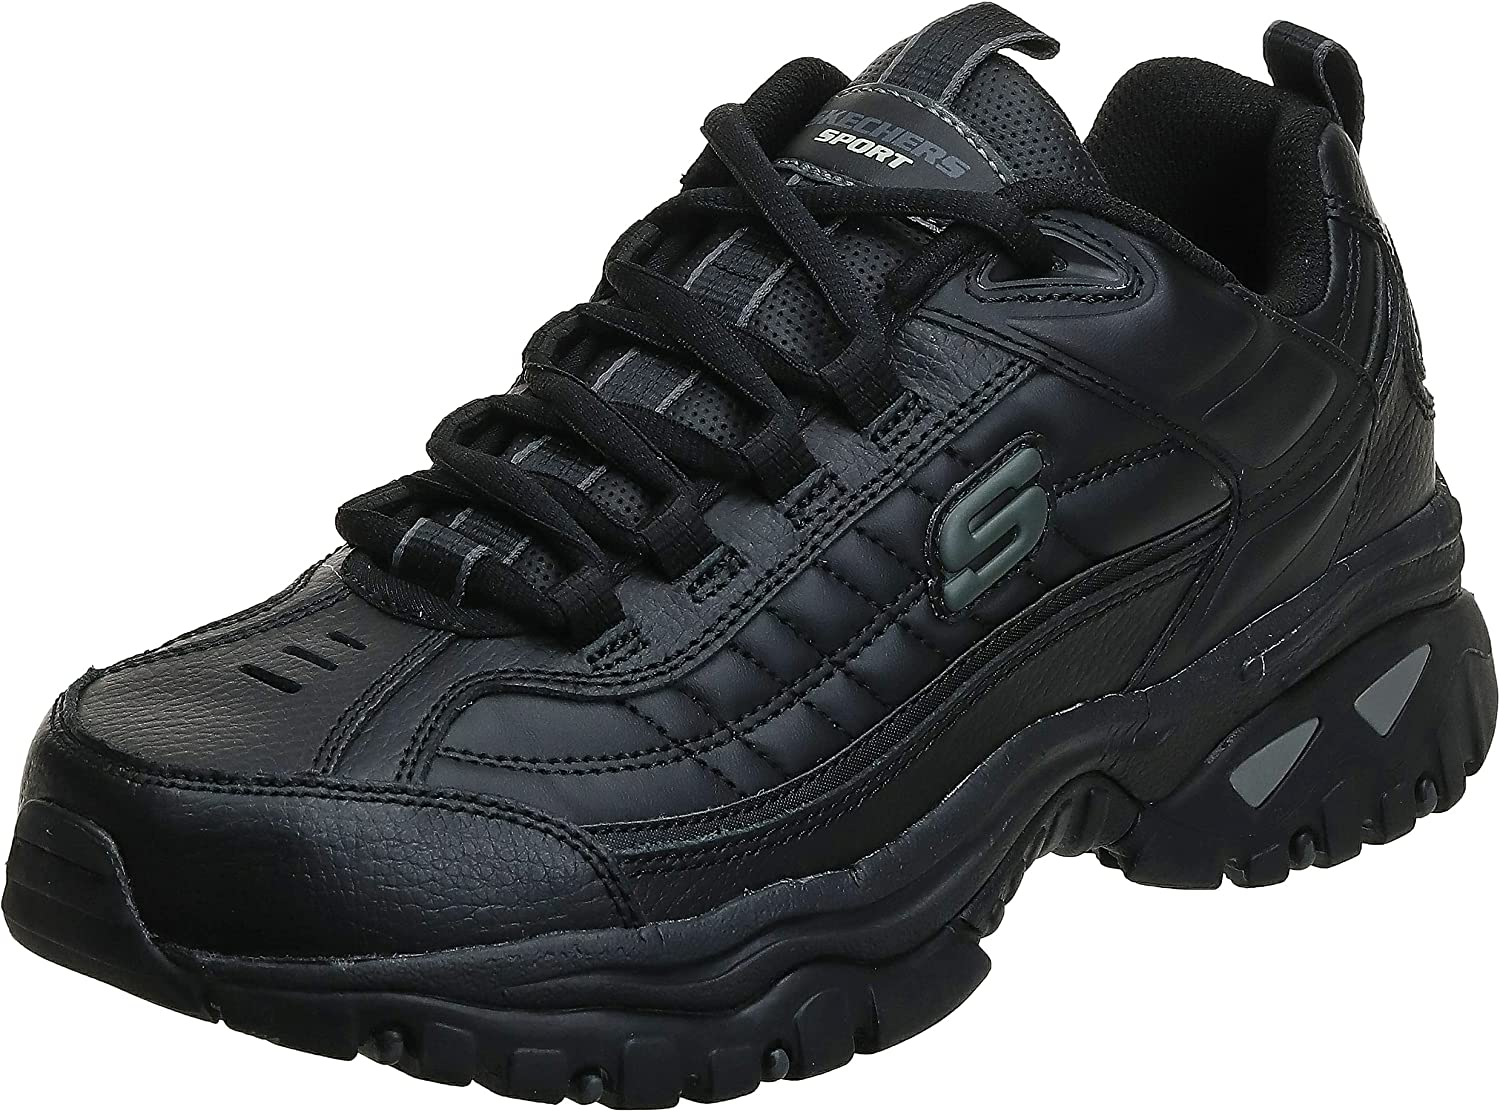 Max 51% OFF Skechers Men's Energy Don't miss the campaign Afterburn Shoes